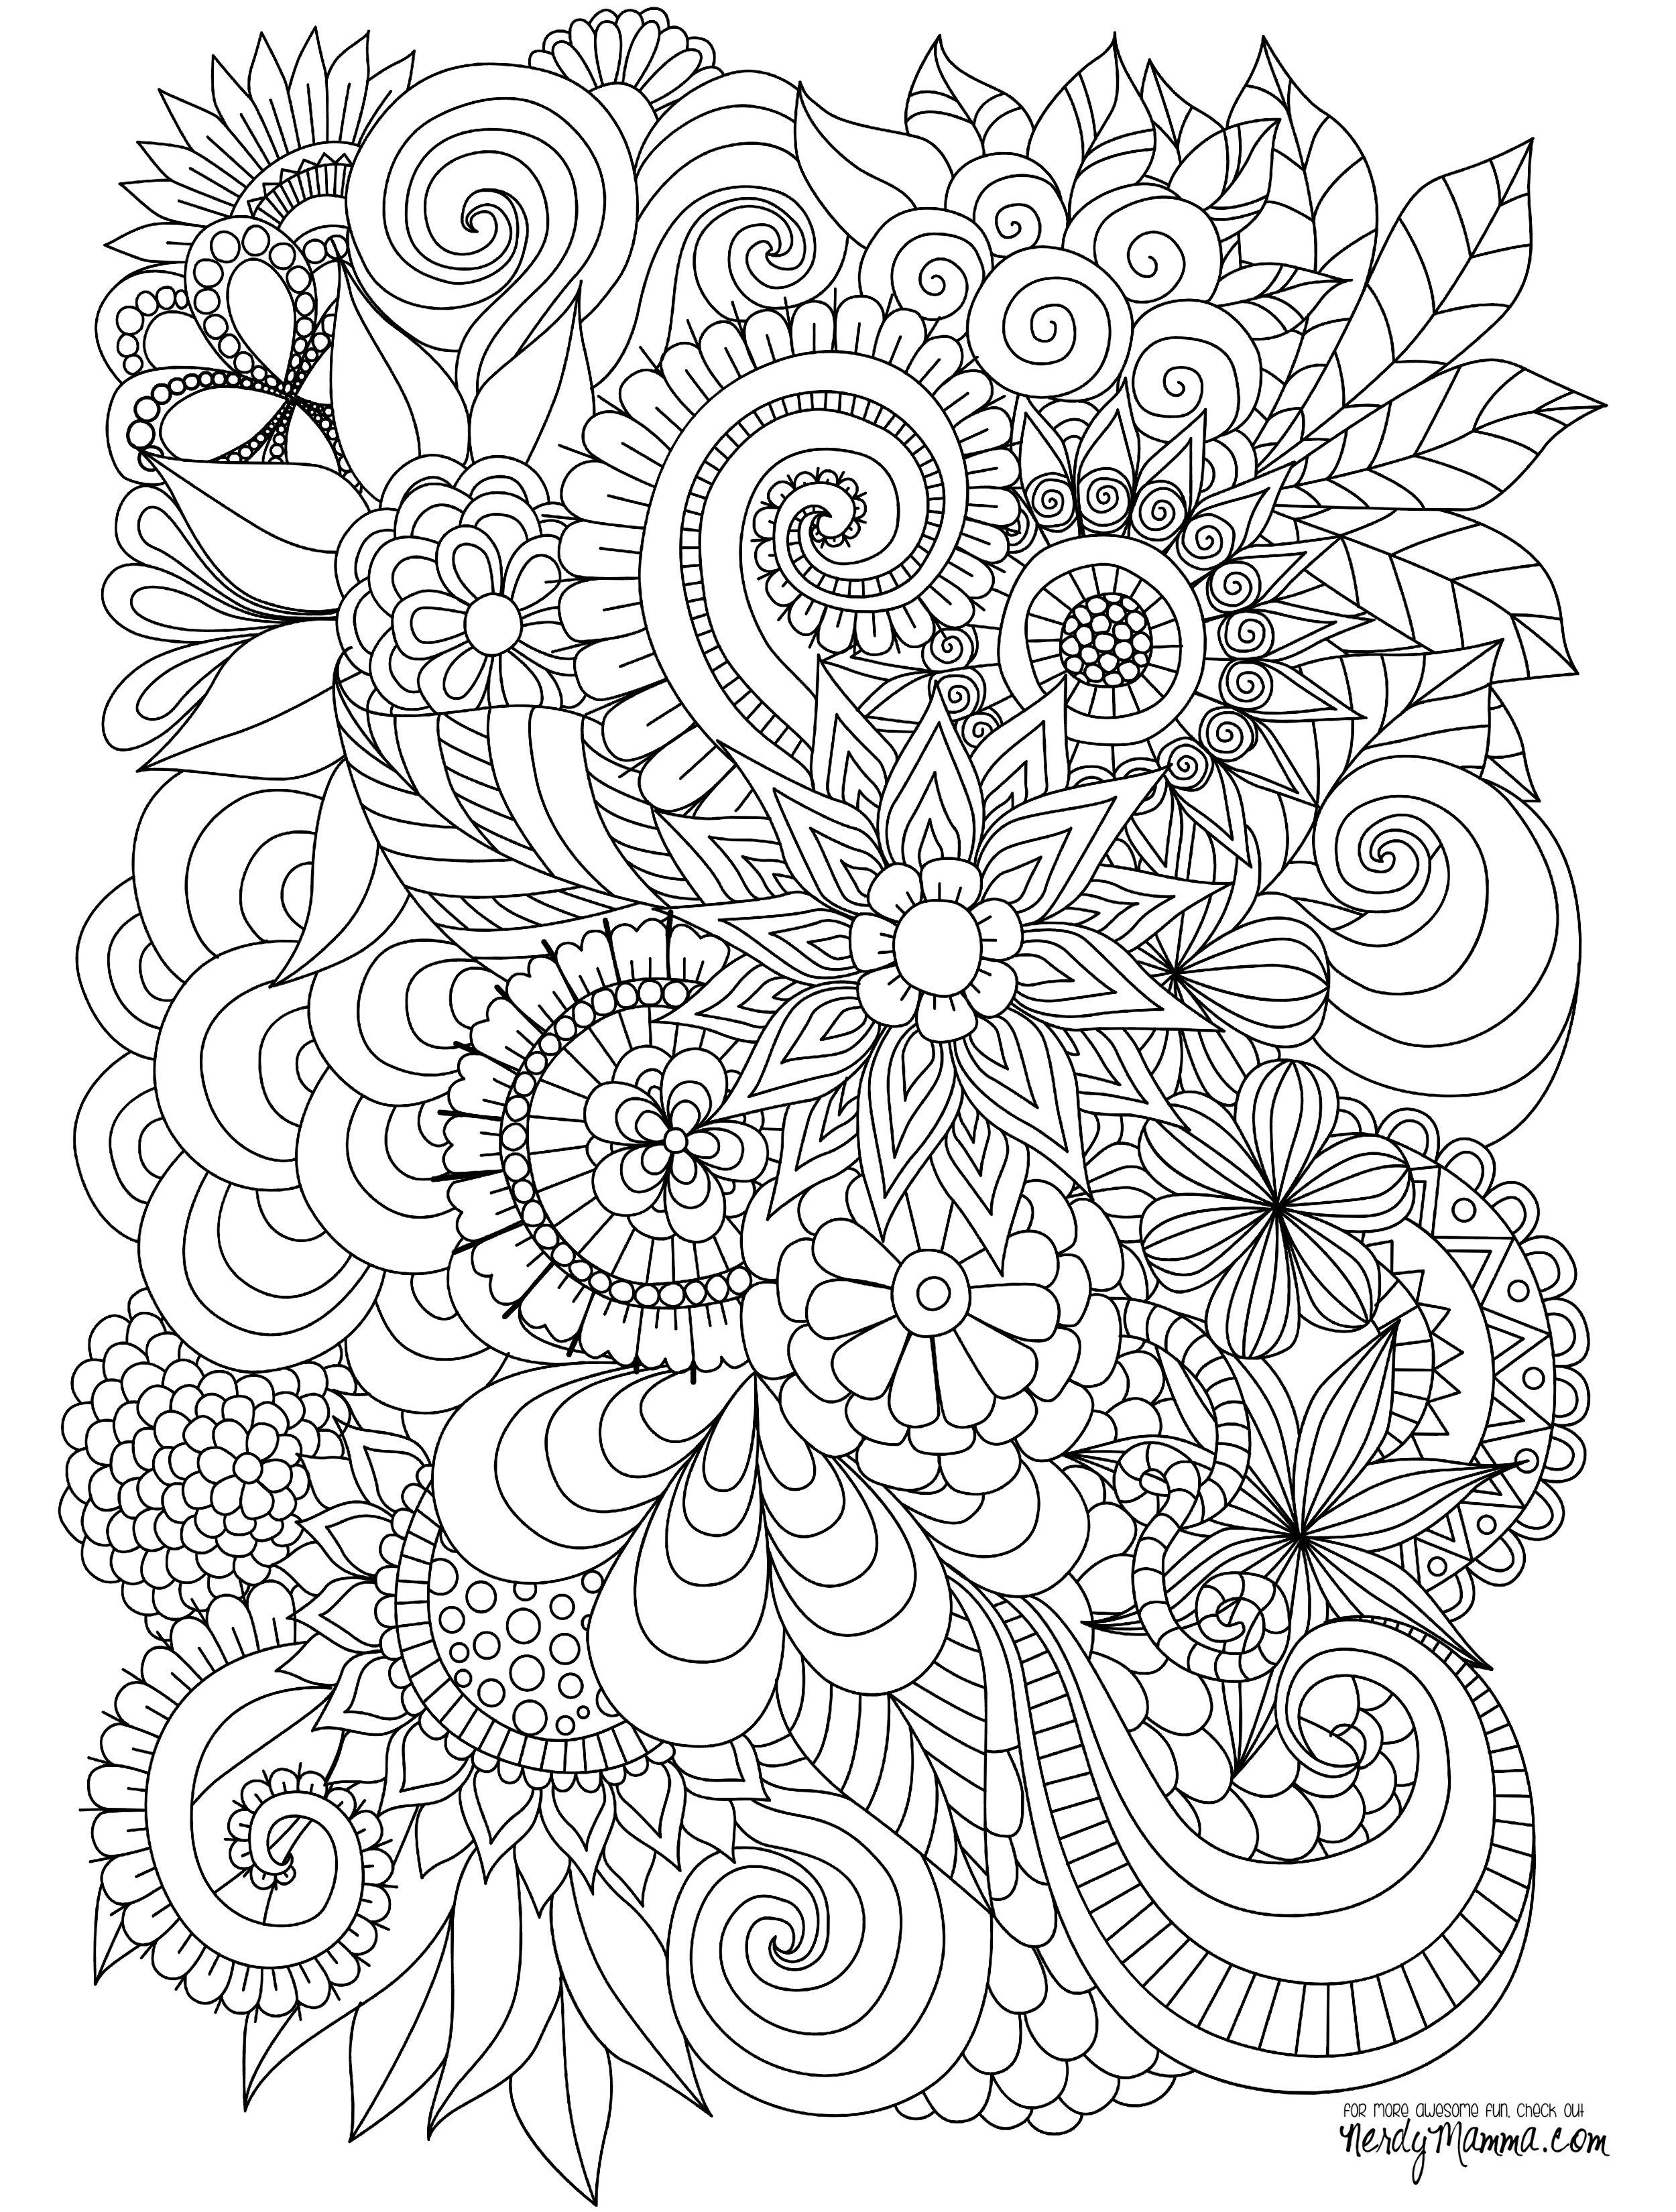 printable lighthouse coloring pages Download-Flowers Abstract Coloring pages colouring adult detailed advanced printable Kleuren voor volwassenen coloriage pour adulte anti stress kleurplaat voor 3-l